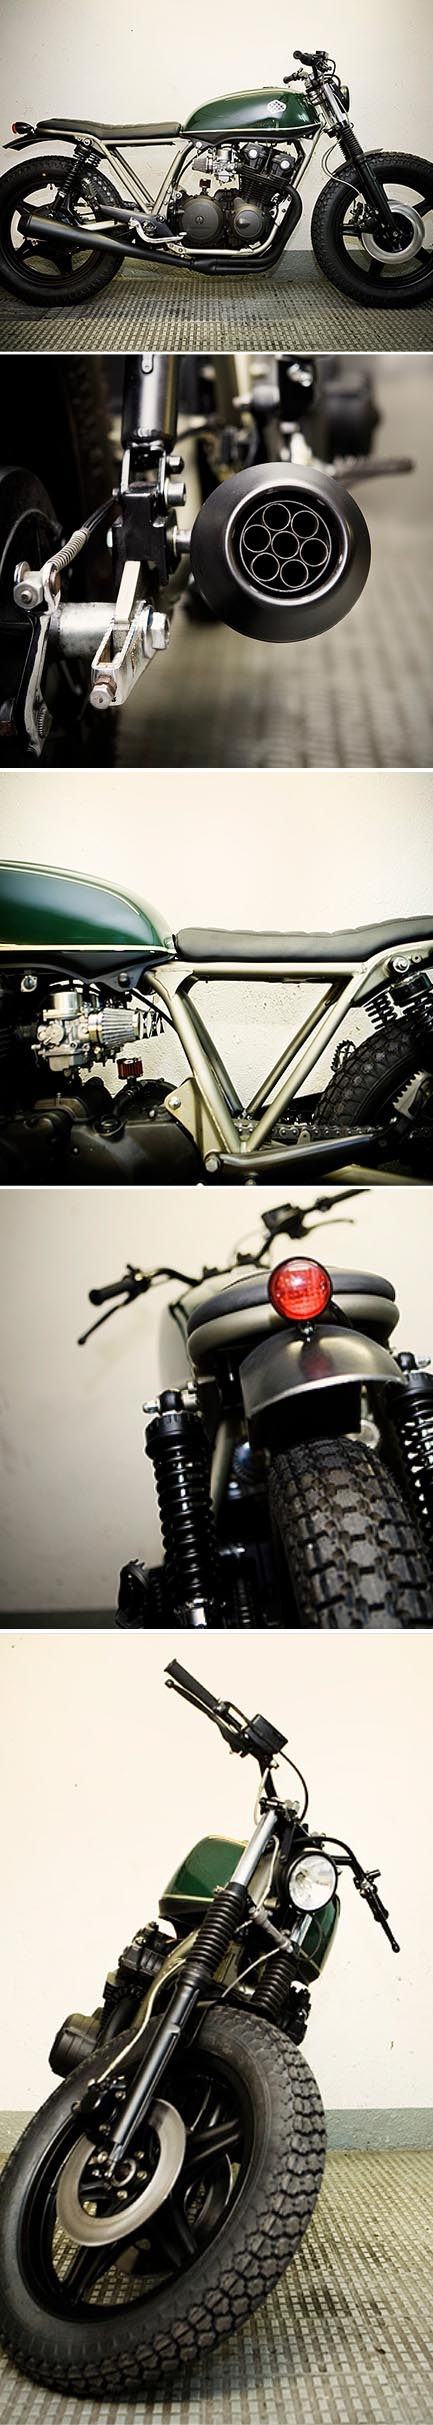 ¡¡¡¡¡¡¡¡¡¡¡!!!!!!!!!! i'm in loveeeeee... Honda CB750 custom